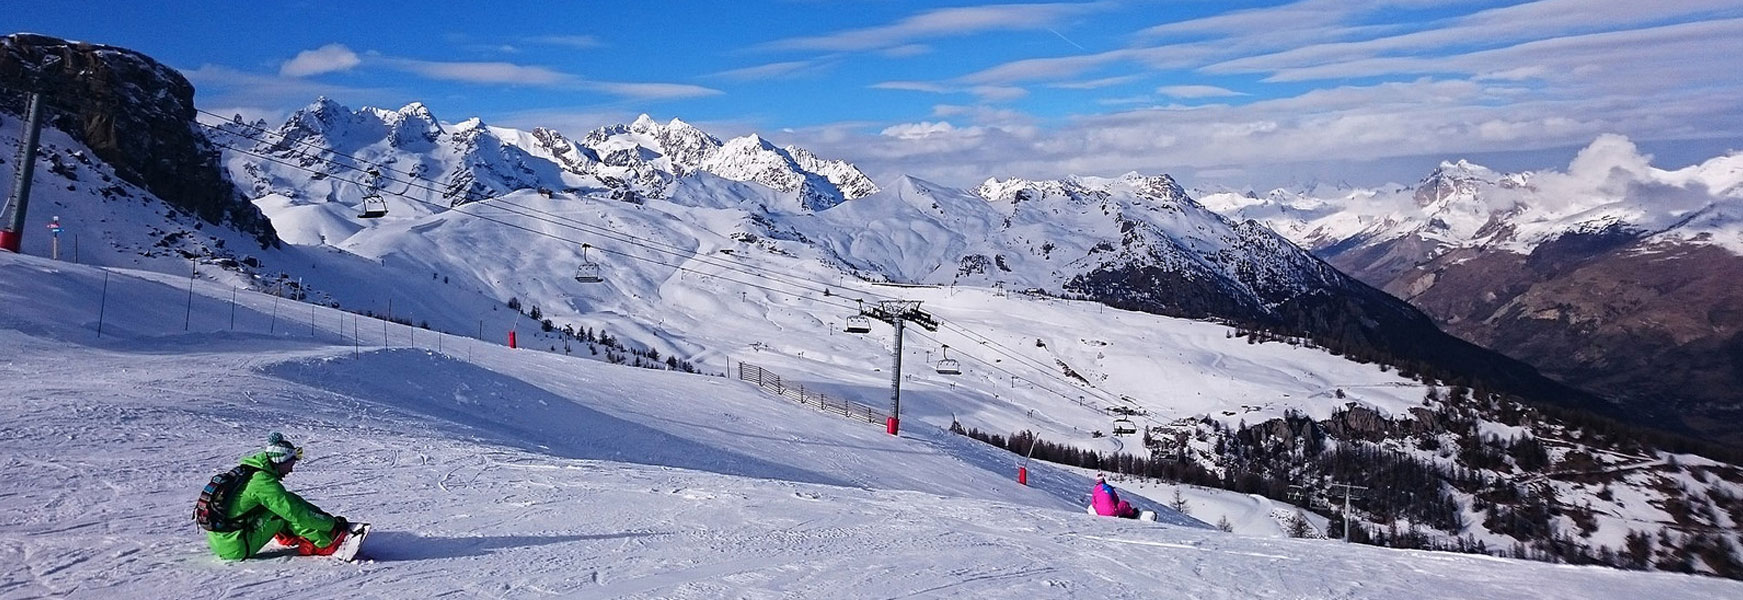 Location Ski Intersport Serre Chevalier 1350